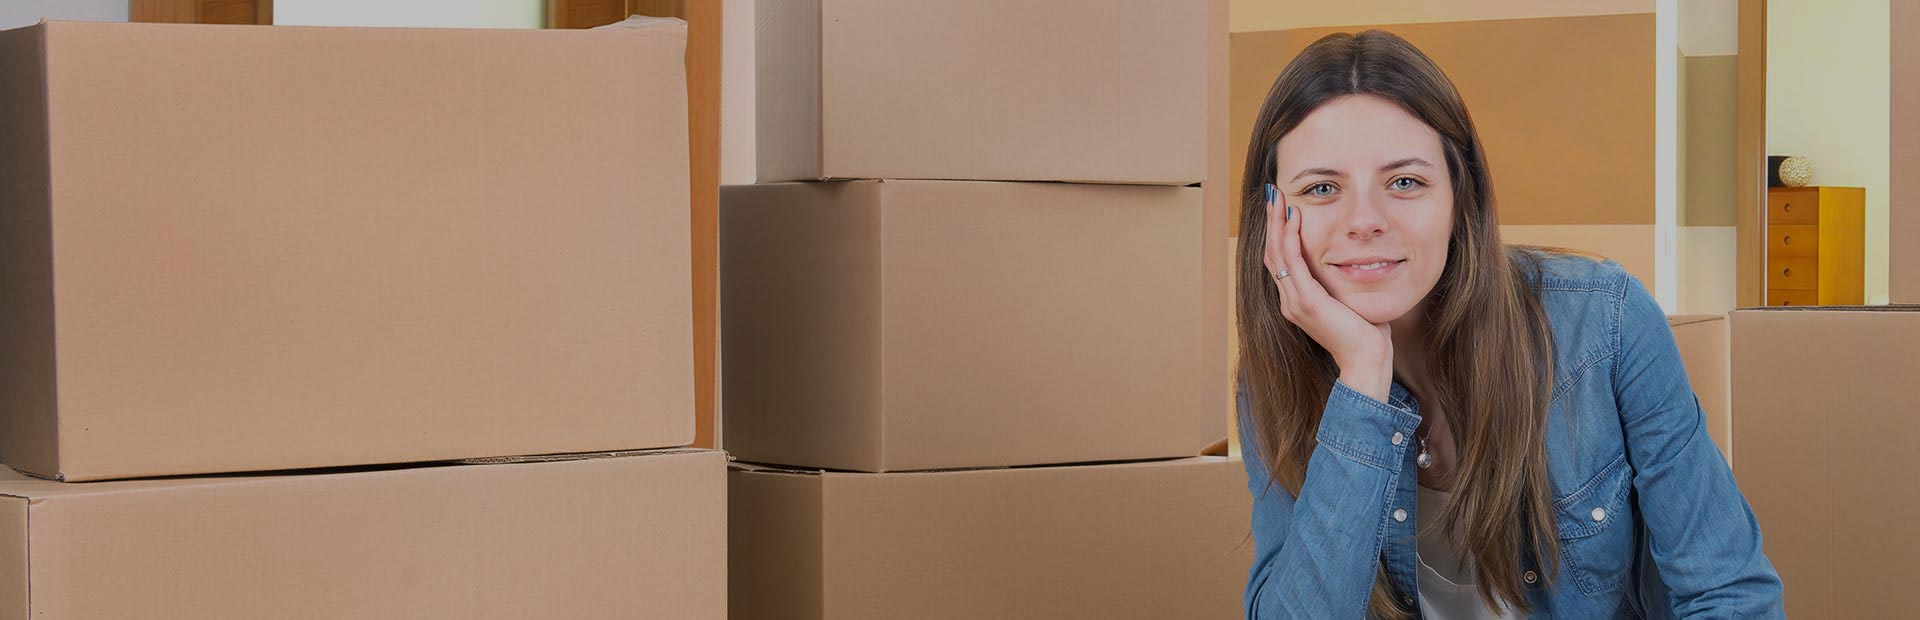 Removal Company West Hampstead